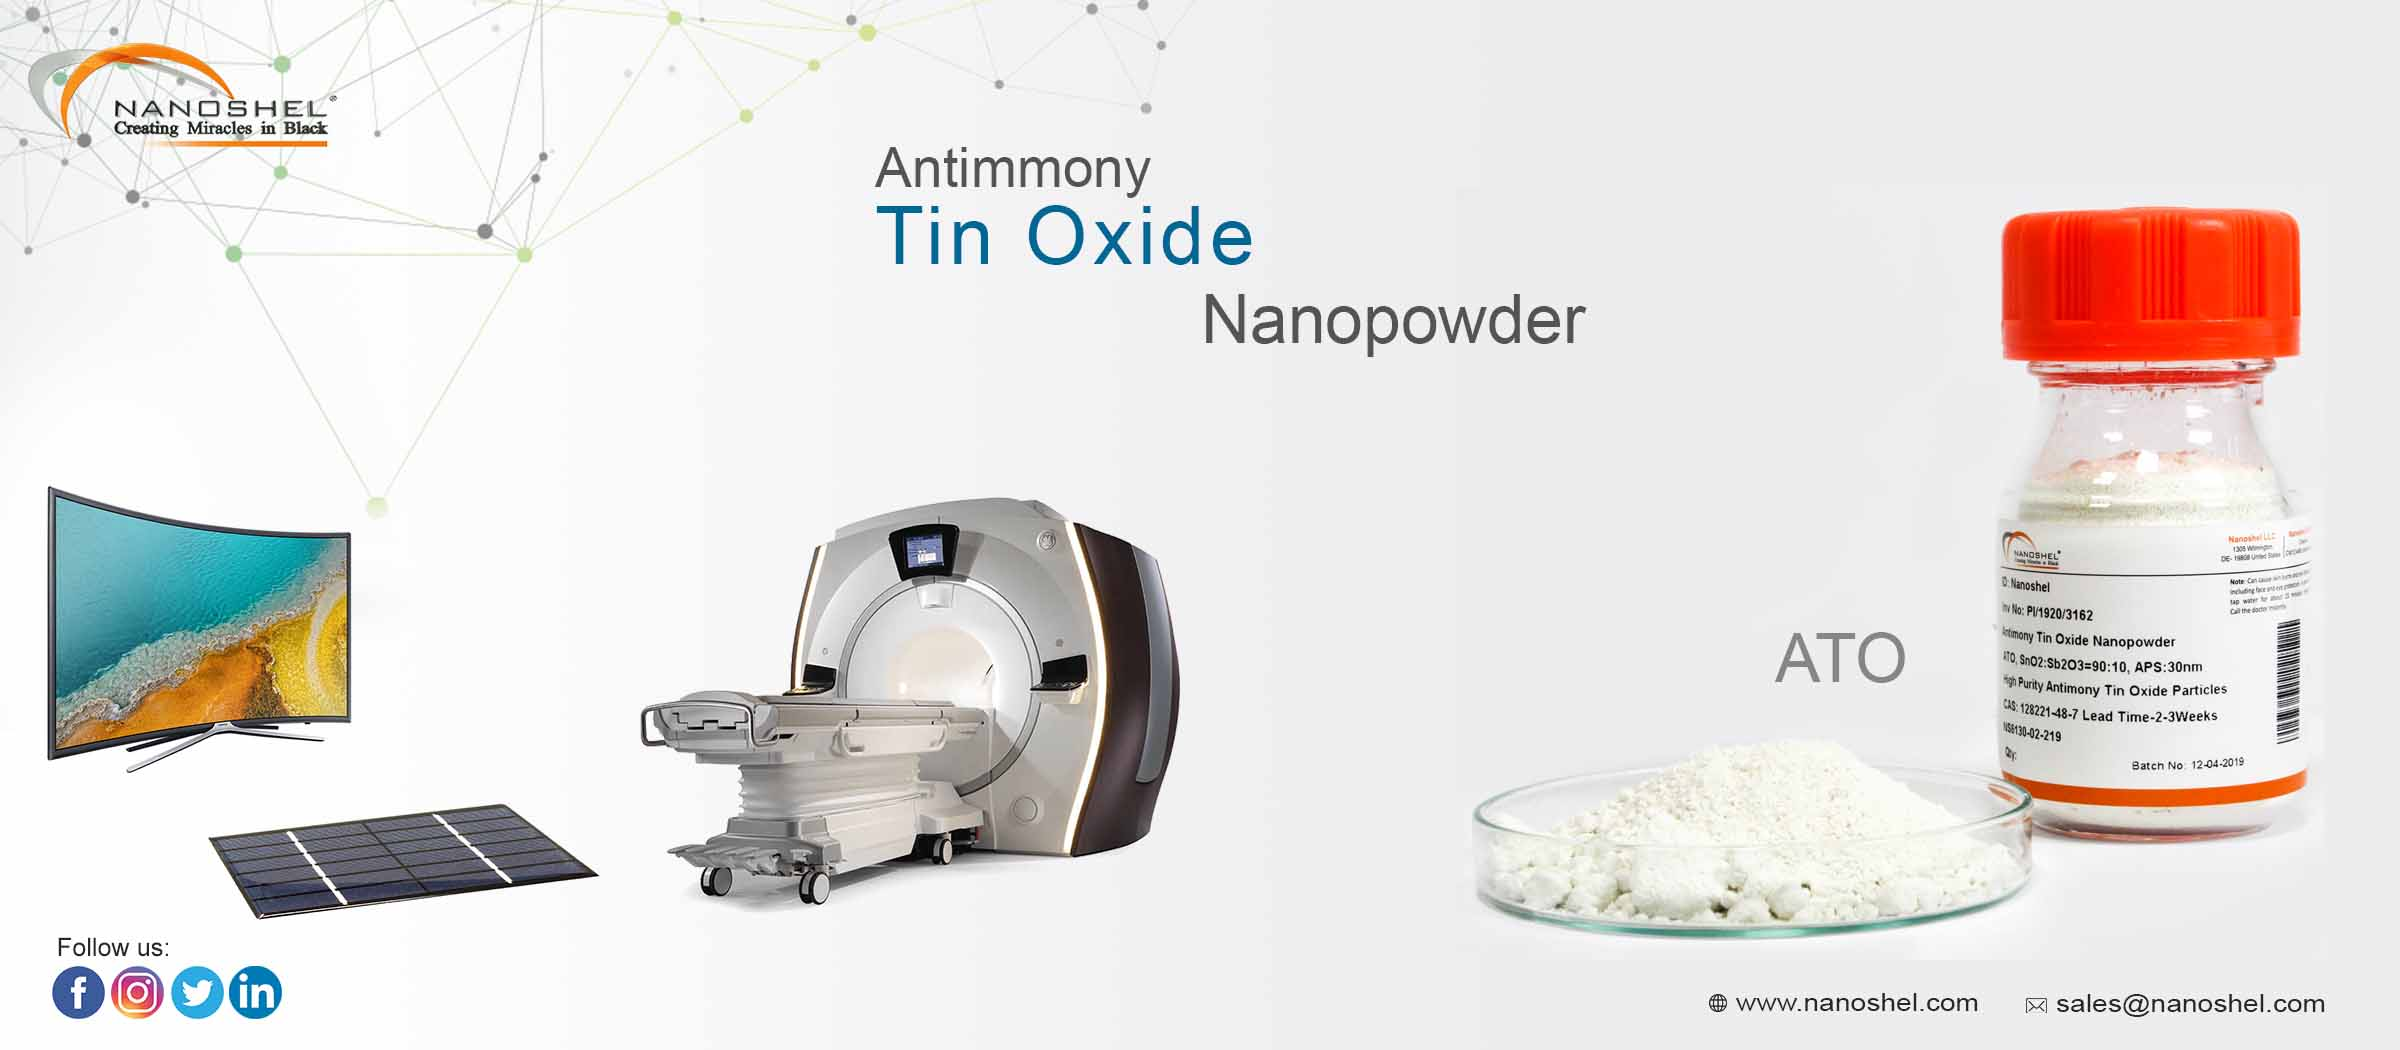 Antimony Tin Oxide Nanoparticles